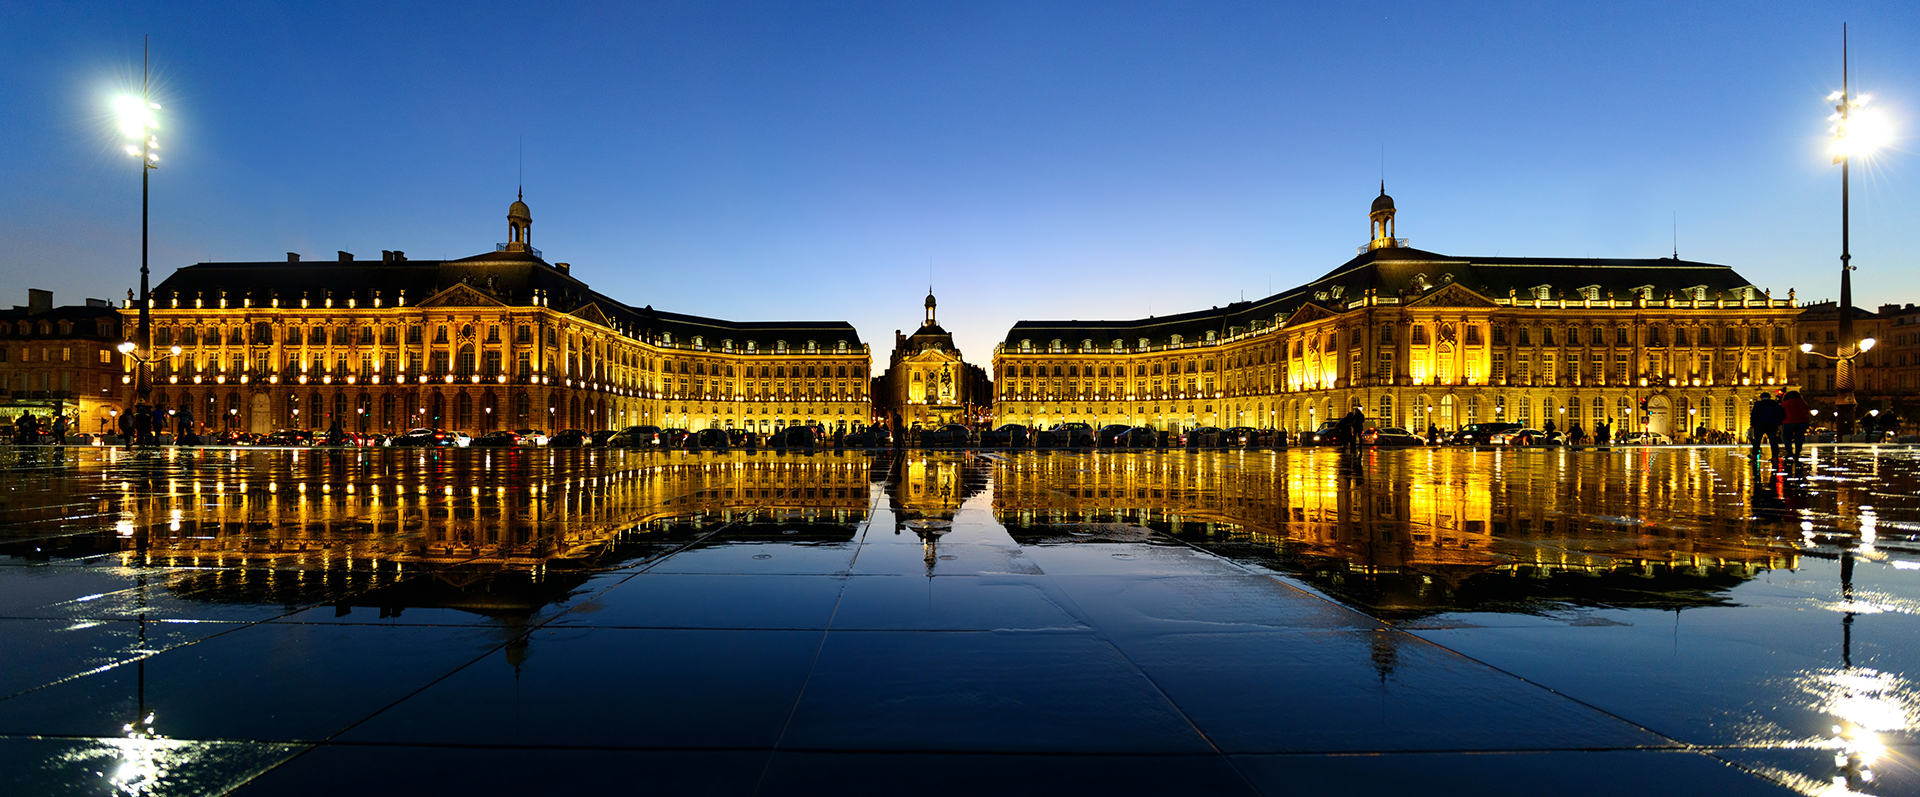 The Water Mirror point and the famous Place Royale of Bordeaux, France. Panorama of Bordeaux's UNESCO World Heritage-listed waterfront at dusk.